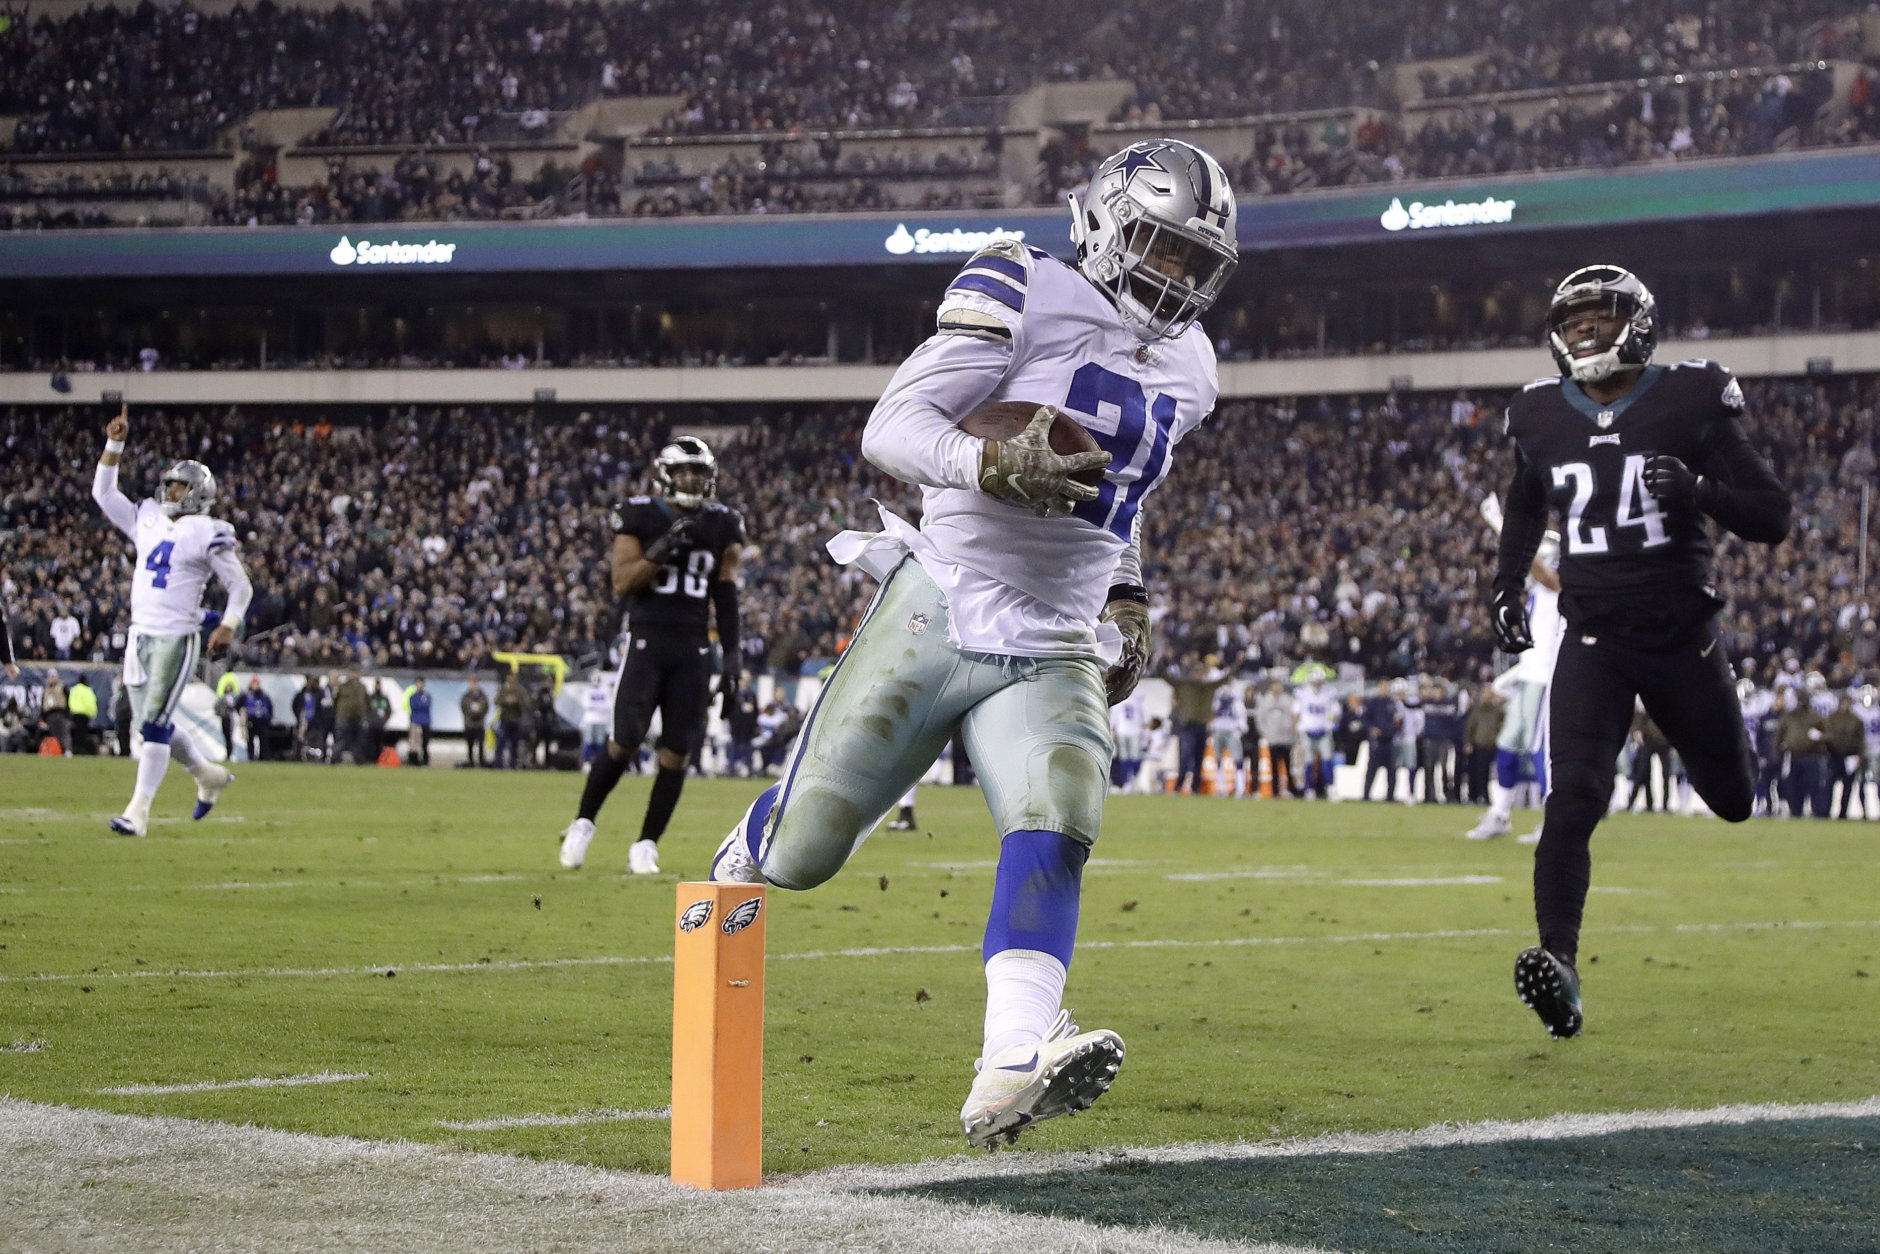 Dallas Cowboys running back Ezekiel Elliott (21) scores on a touchdown pass from quarterback Dak Prescott (4) as Philadelphia Eagles free safety Corey Graham (24) tries to stop him during the second half of an NFL football game, Sunday, Nov. 11, 2018, in Philadelphia. (AP Photo/Matt Slocum)